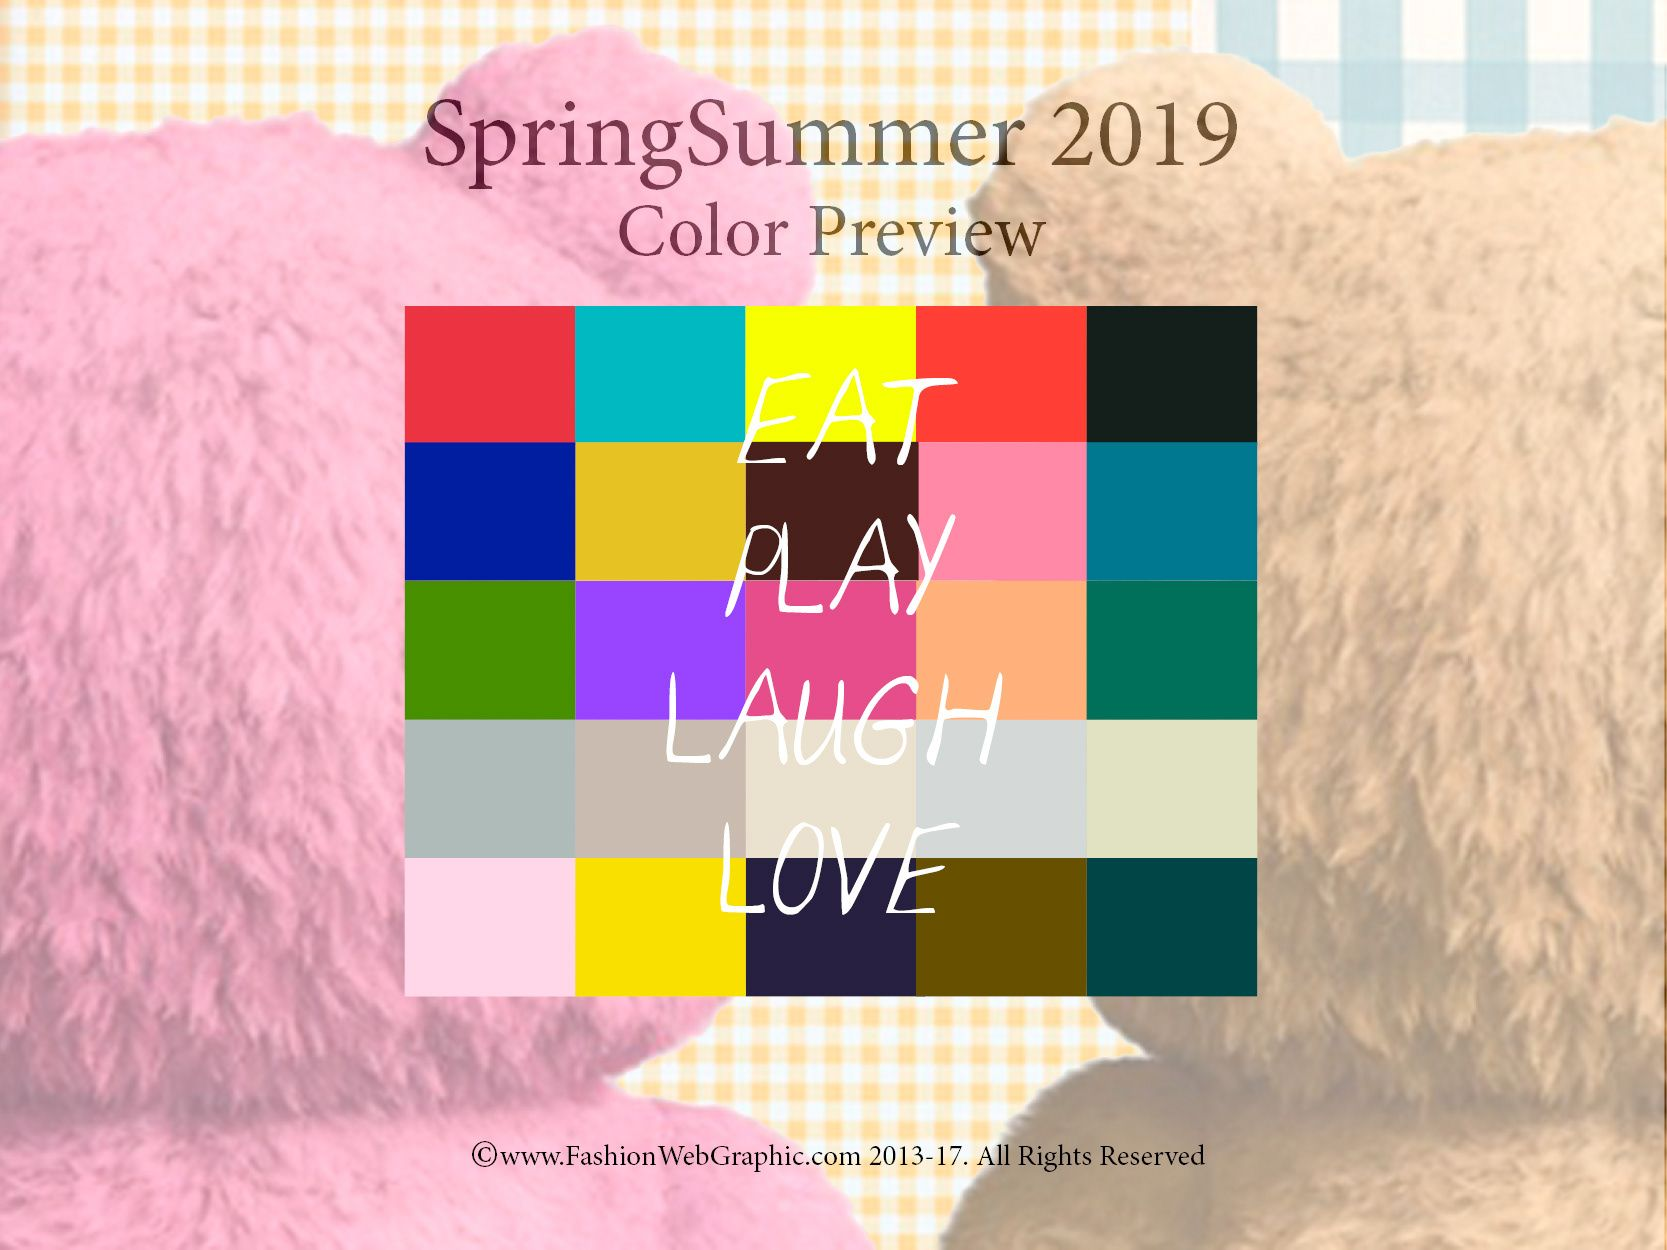 spring summer 2019 trend forecasting is a trend color guide that